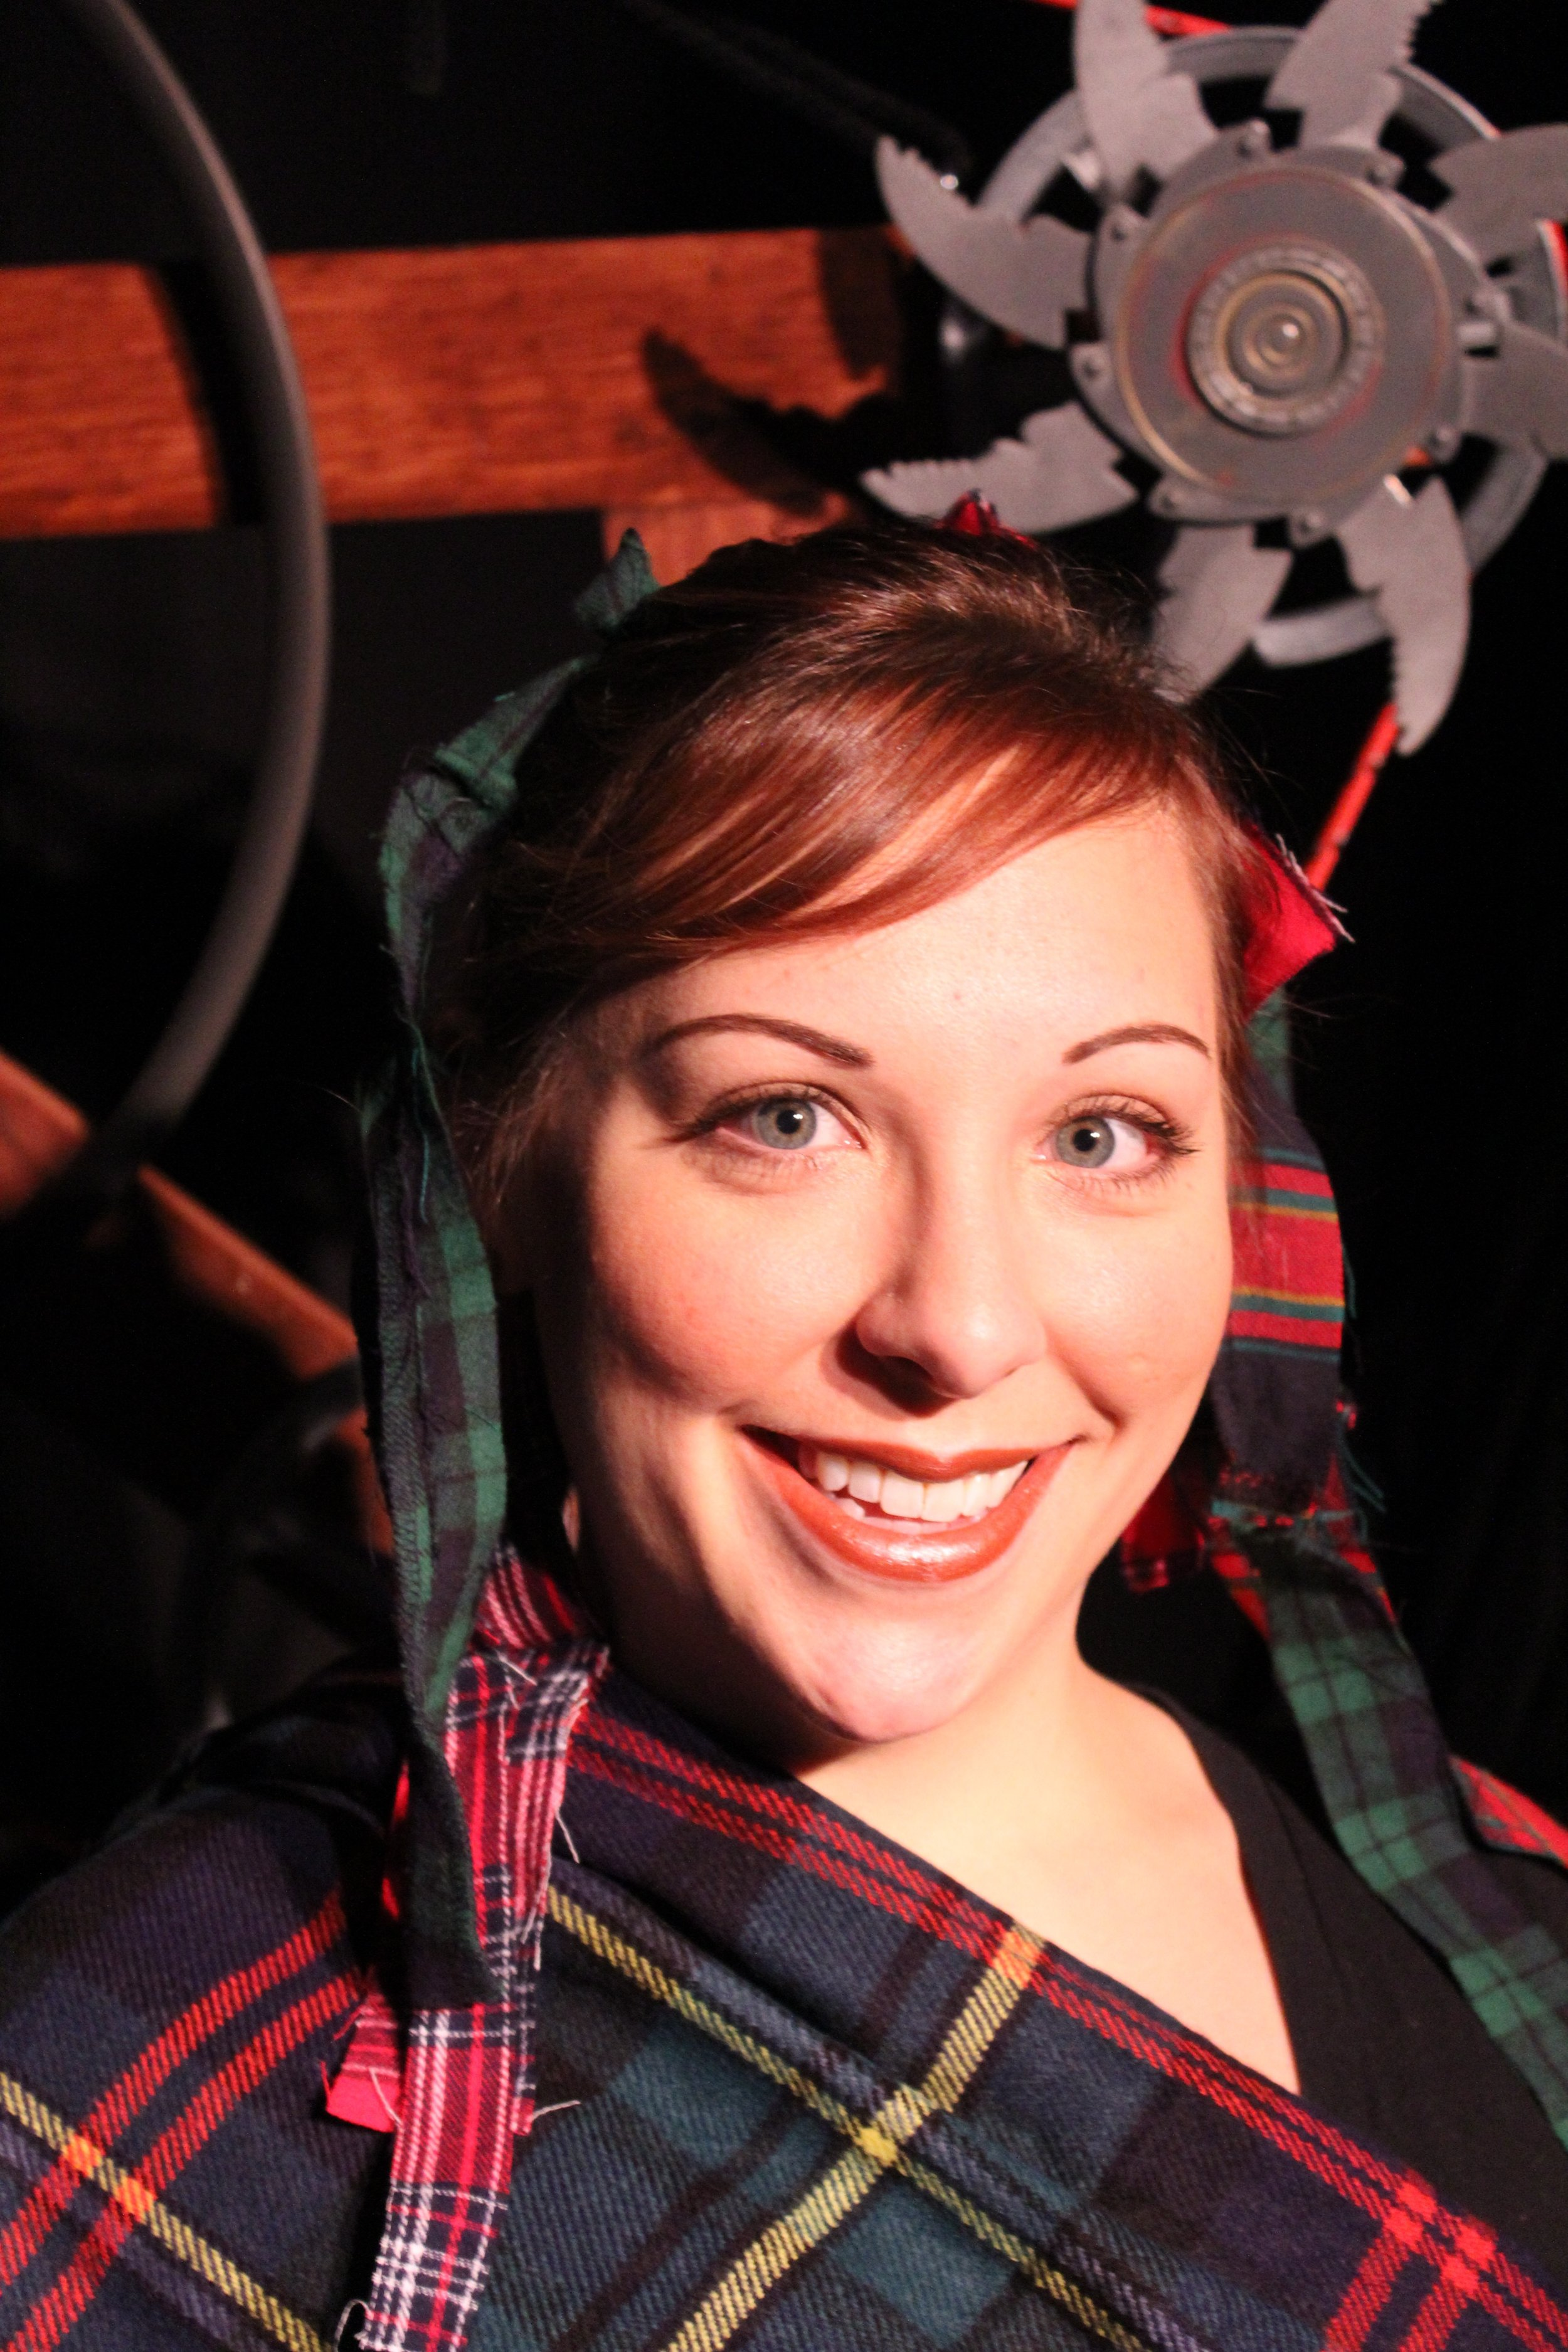 JESSICA L. HALL: (Rag Man/Woman at Well) is excited to be joining this fun cast! Born and raised in Niagara Falls, NY, Jessica fell in love with the Denver area while on tour with Missoula Children's Theatre. She holds a BA in Theatre from Buffalo State College in Buffalo, NY. Most recently she was seen playing Jan in  Grease at the PACE Center in Parker. Some of her favorite Western New York credits include: Spamalot (Lady of the Lake), Nunsense (Sister Amnesia), and  Seussical the Musical  (Sour Kangaroo). Jessica would like to thank her family, friends, directors, and Greg for all of their faith, love, and support.